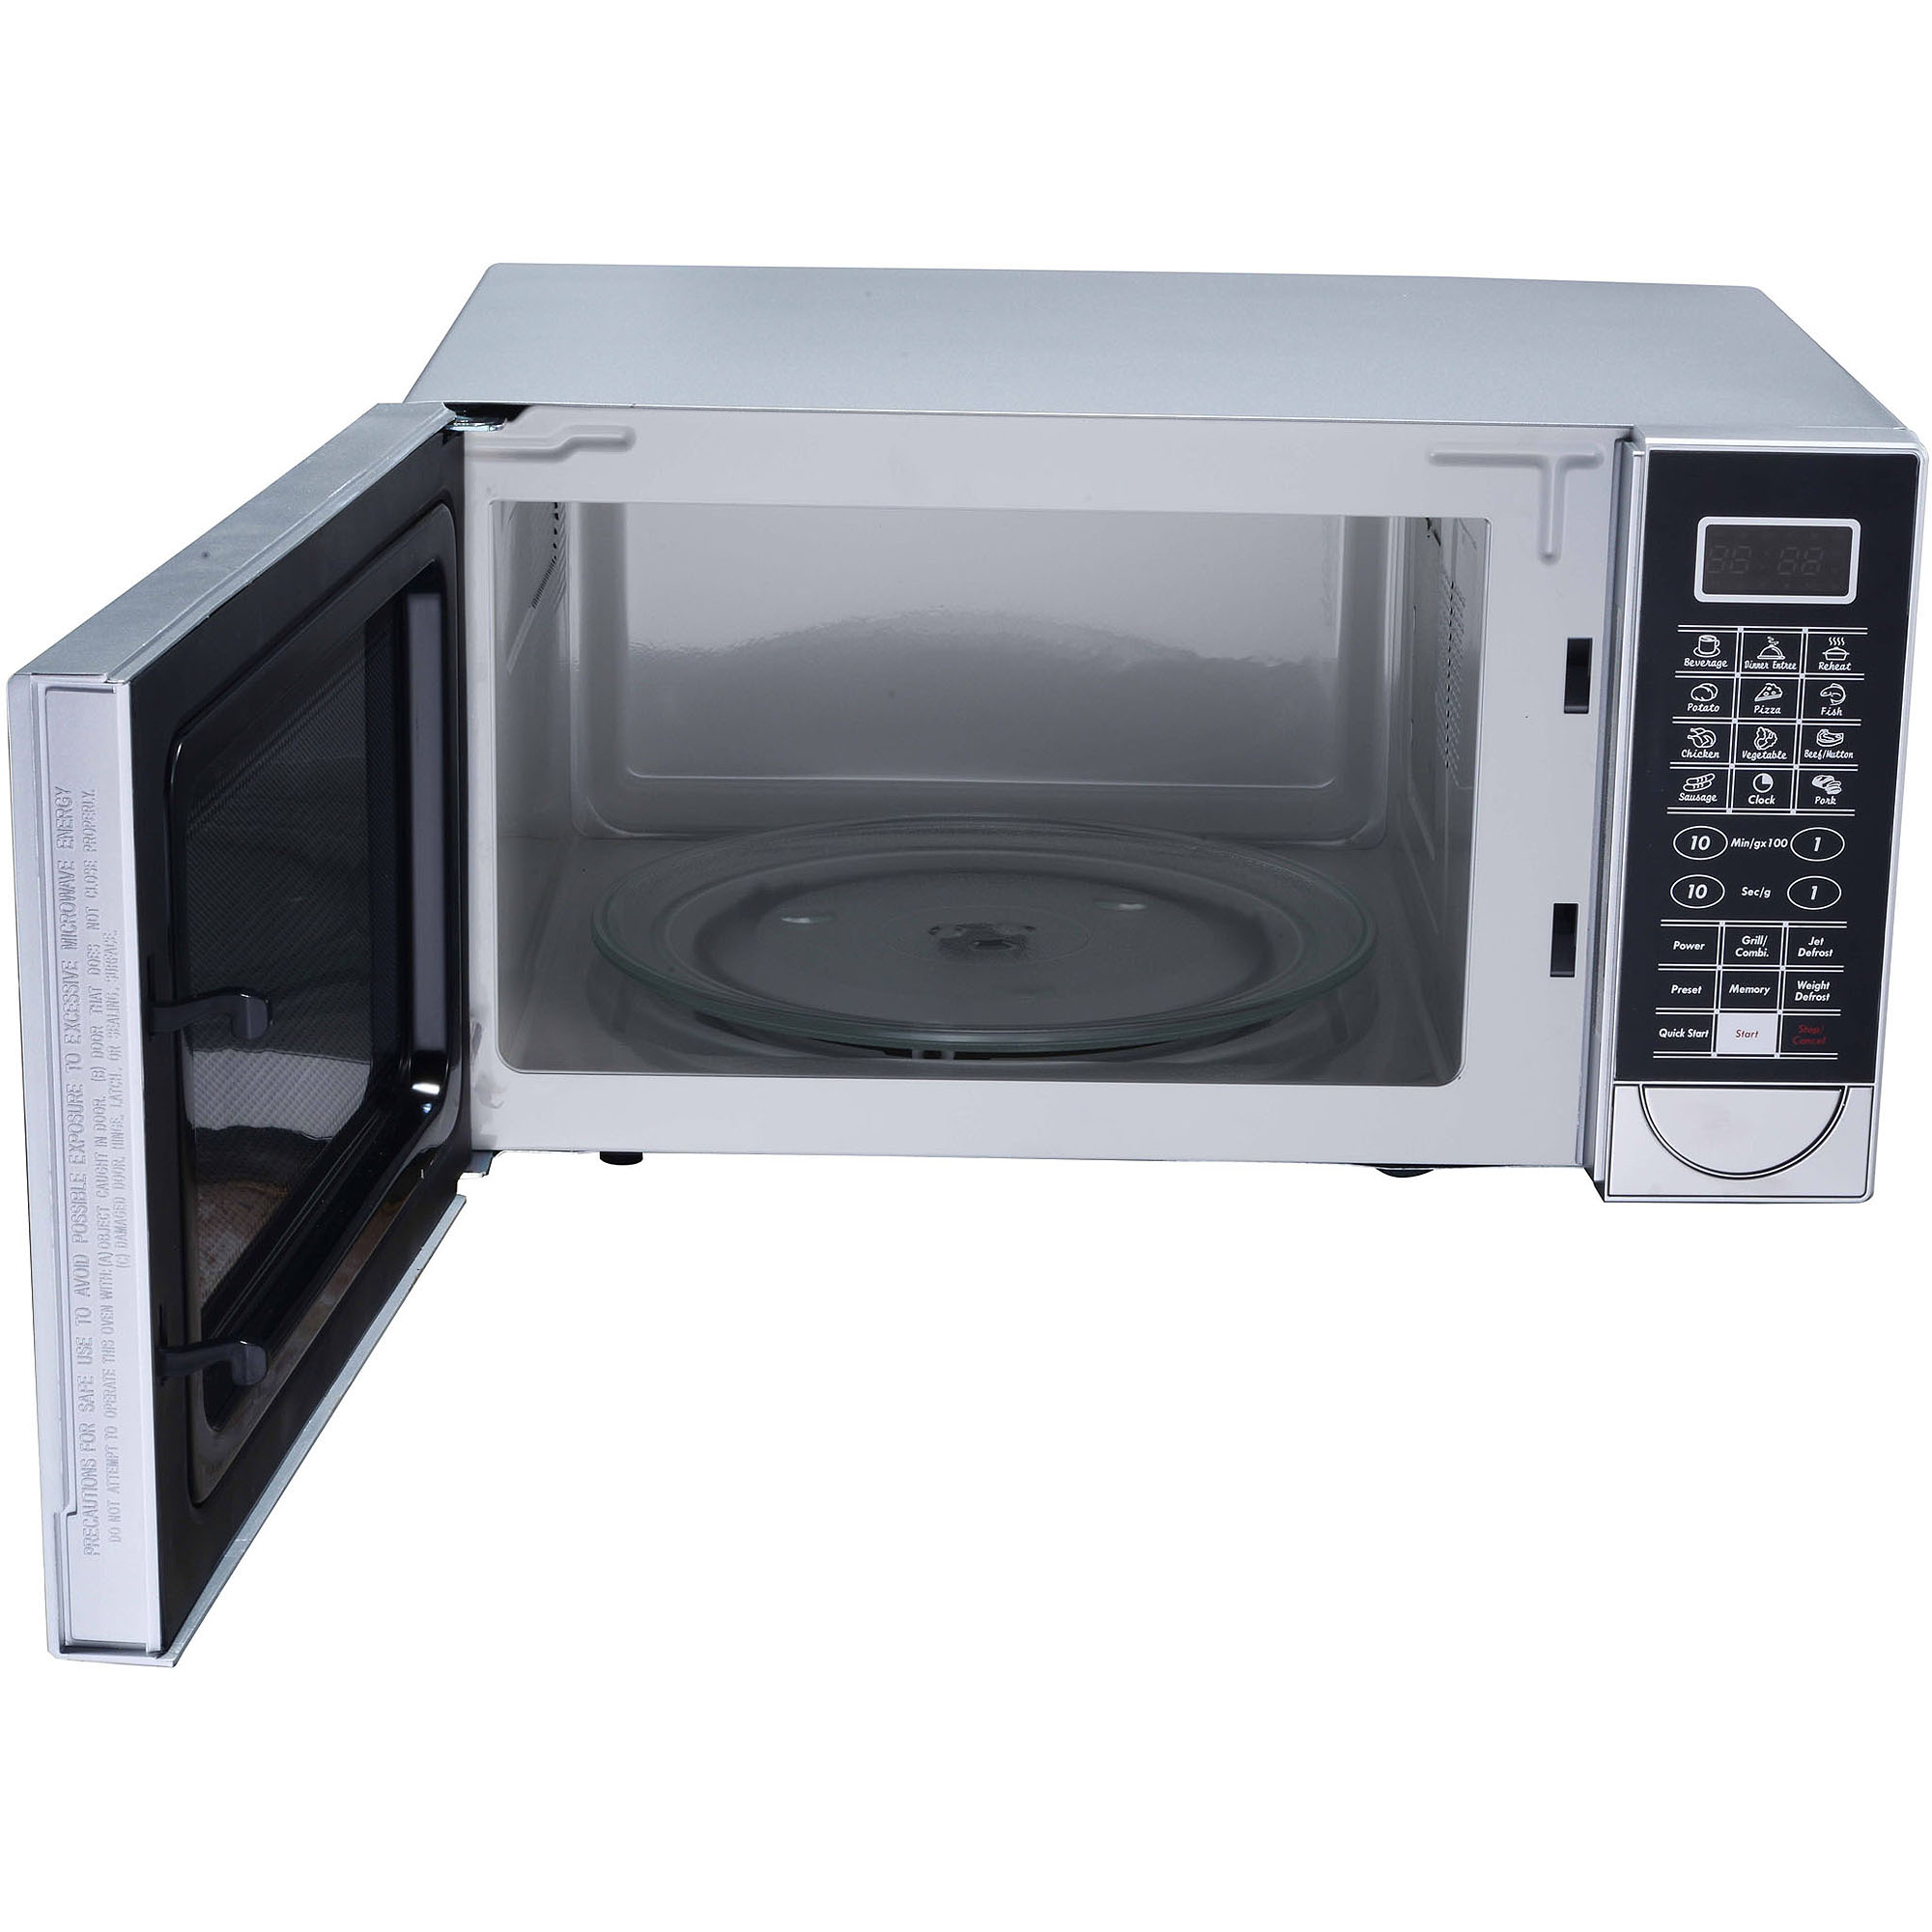 RCA 1.1 cu ft Design Microwave with Grill Feature, Stainless Steel